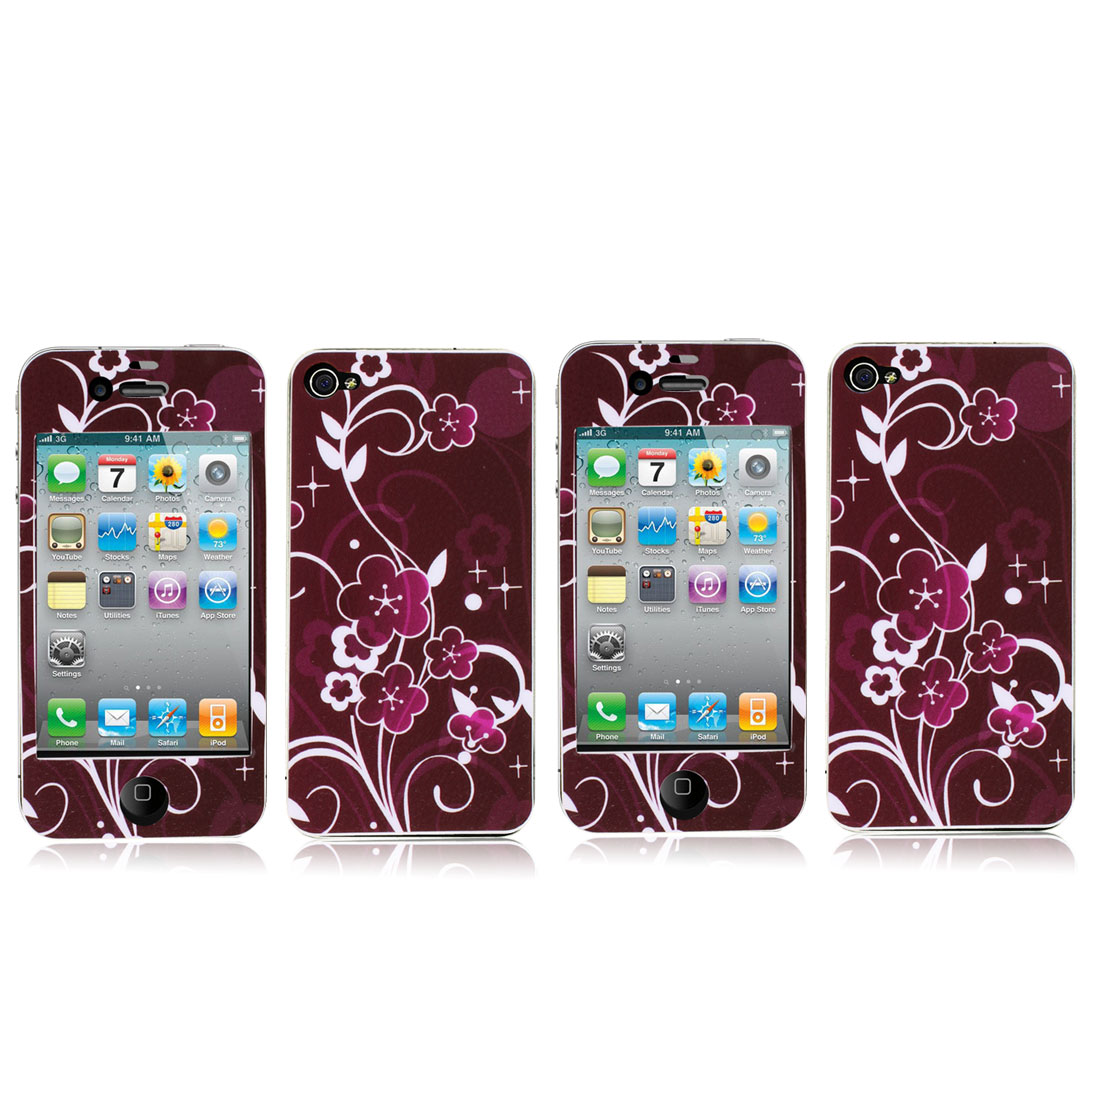 2 Pcs Burgundy Vinyl Front Back Sticker Cover Protector for iPhone 4 4G 4S 4GS